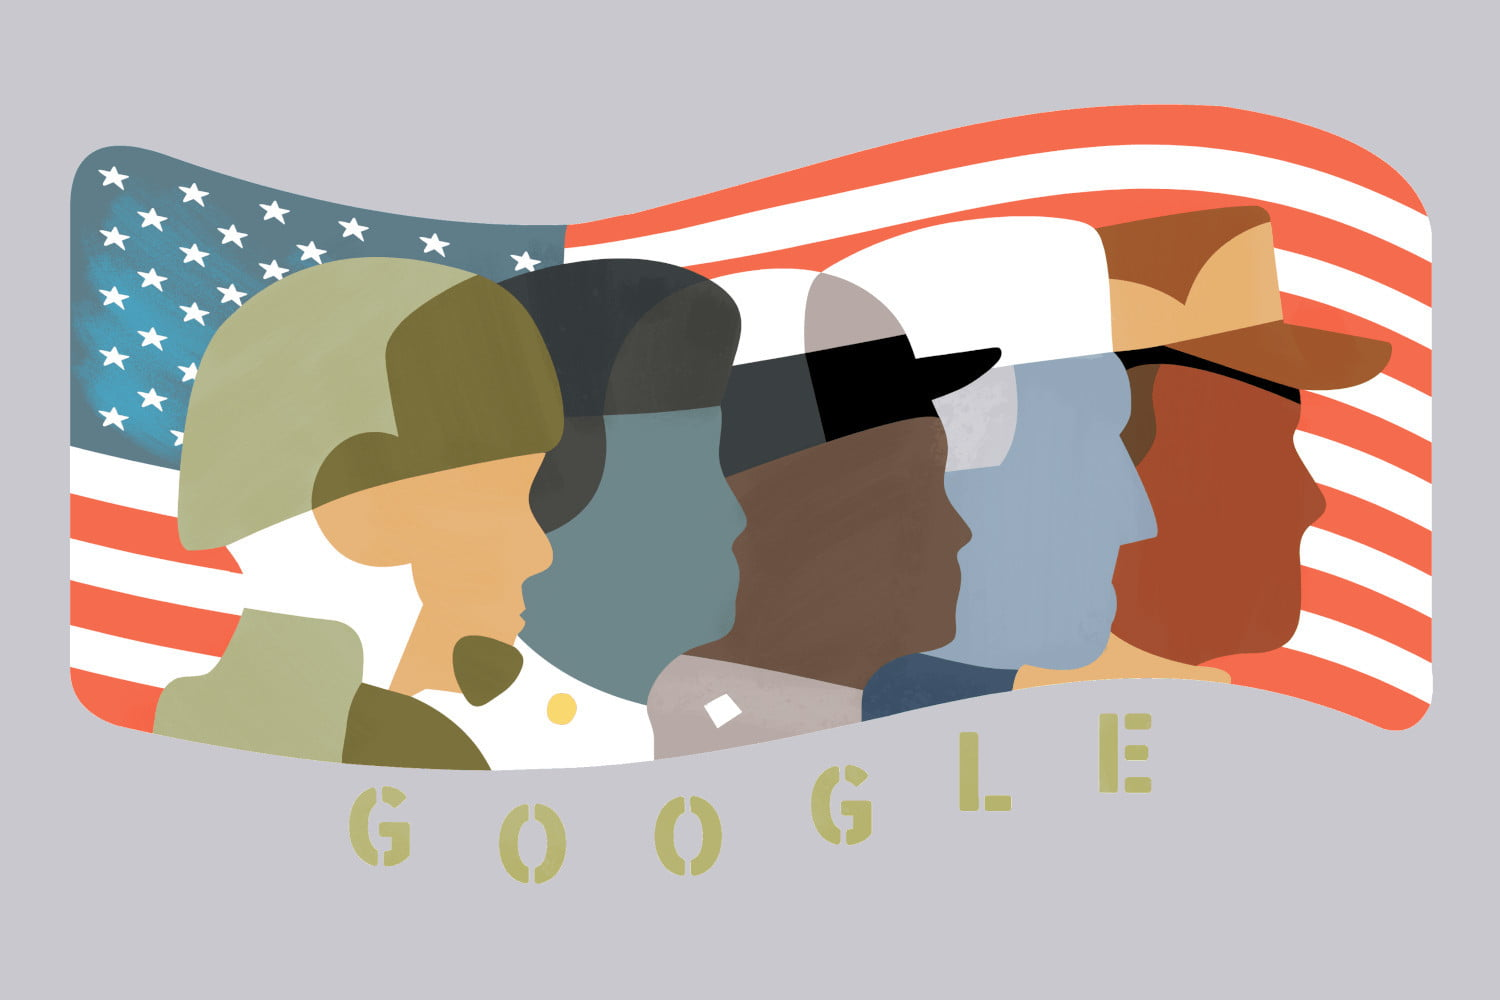 Veterans day clipart 1500x1000 png black and white Google honors Veterans Day by highlighting military service ... png black and white